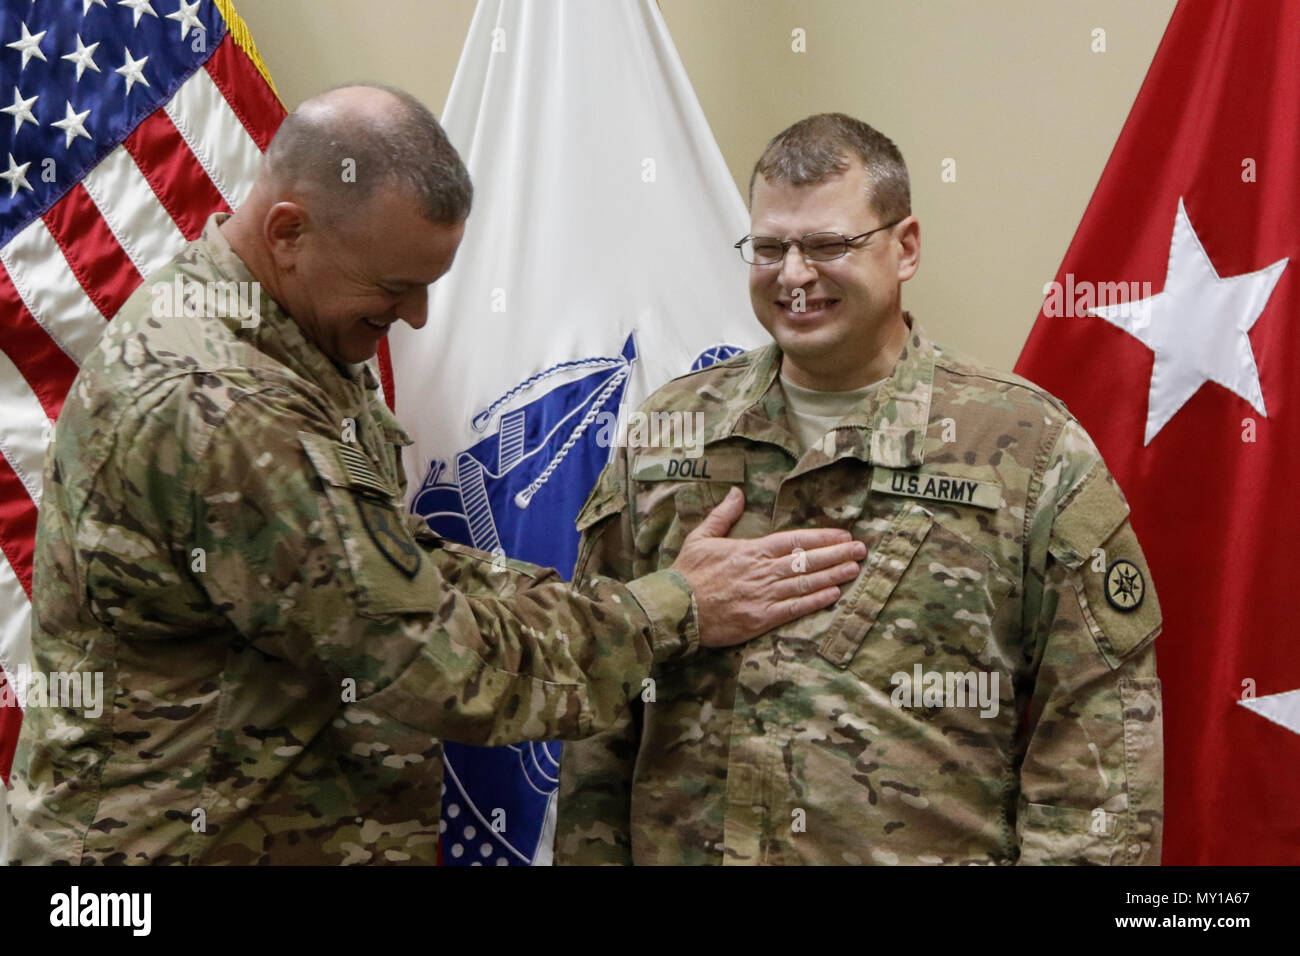 Brig. Gen. Robert D. Harter, 316th Sustainment Command (Expeditionary) commanding general, places the rank of Major on Phillip Doll during a promotion ceremony at Camp Arifjan, Kuwait, Dec. 31, 2016. (U.S. Army Photo by Maj. Julius Penn) - Stock Image